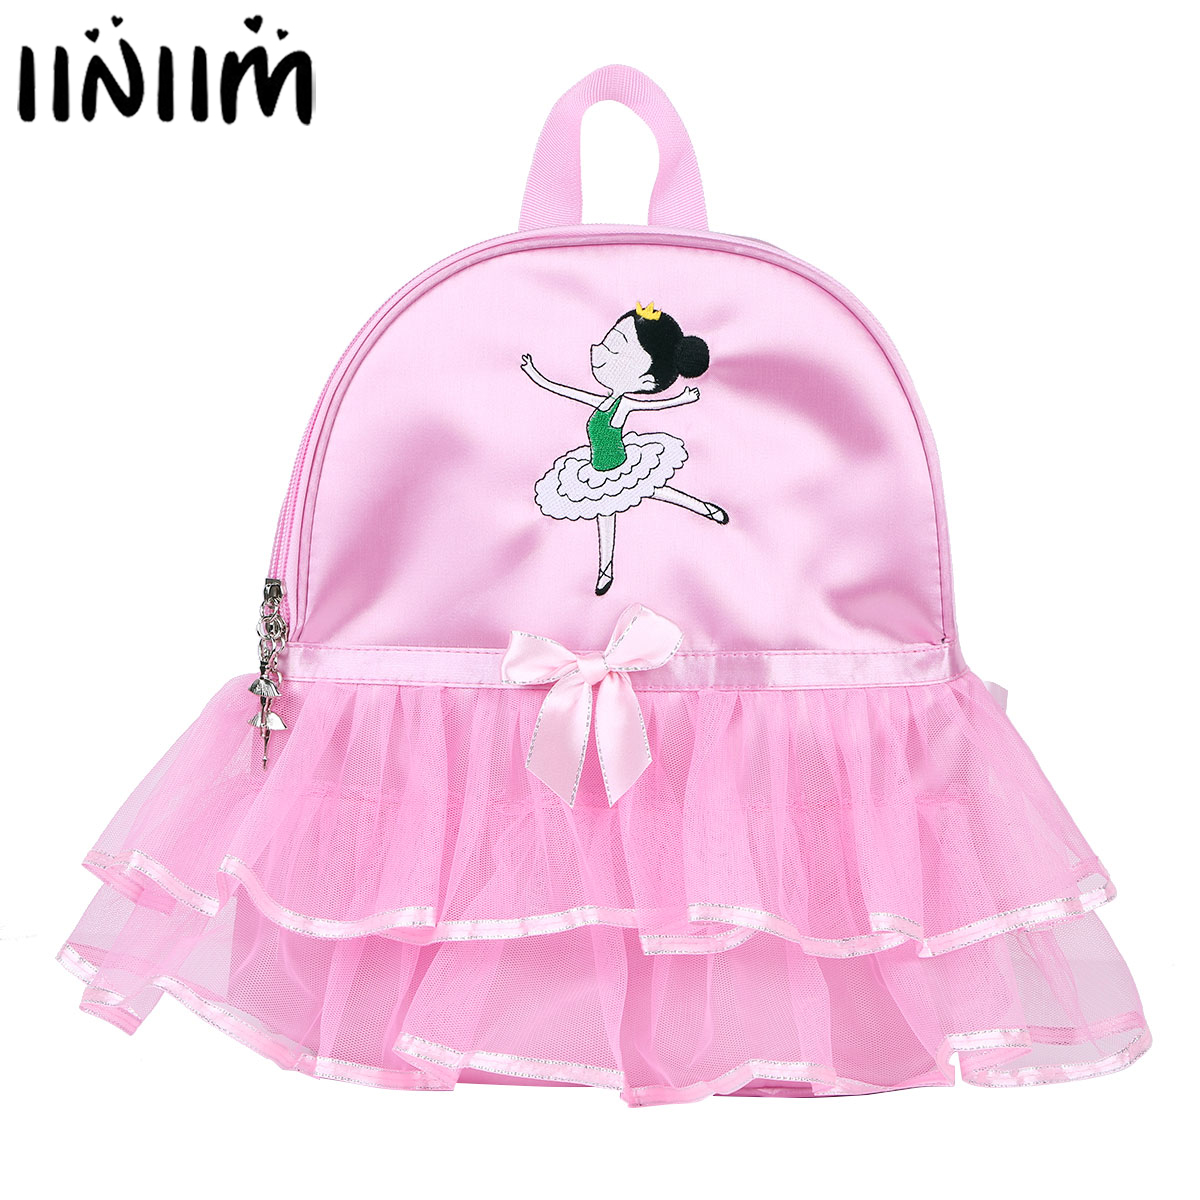 Kids Girls Ballet Dance Bag Students School Backpack Cartoon Girls Embroidered Tiered Ruffled Tutu Shoulder Bag